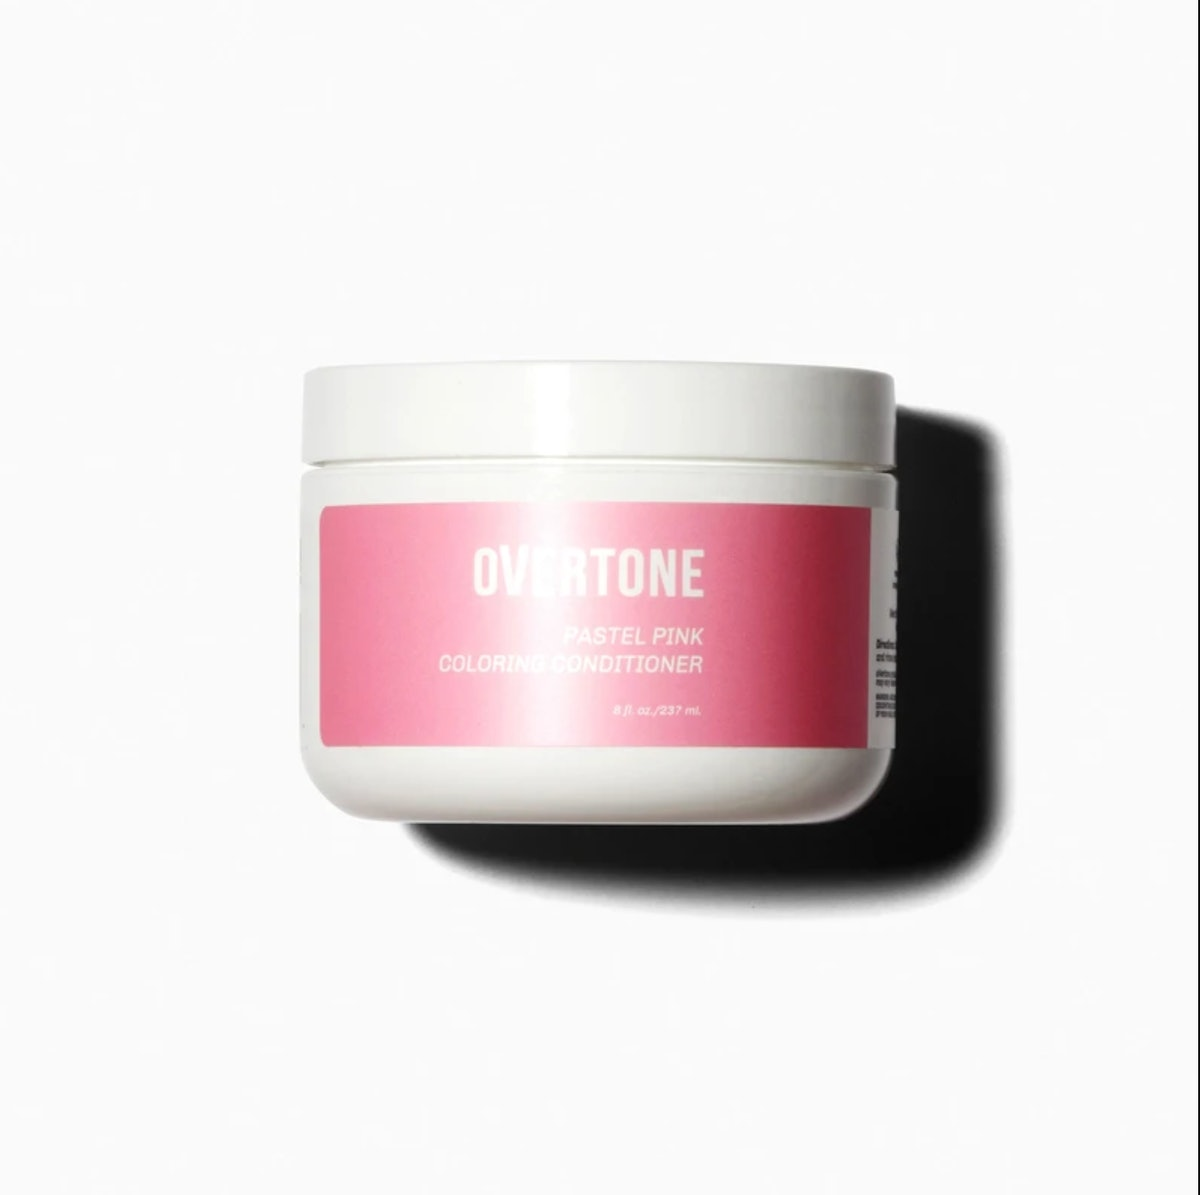 oVertone Pastel Pink Coloring Conditioner